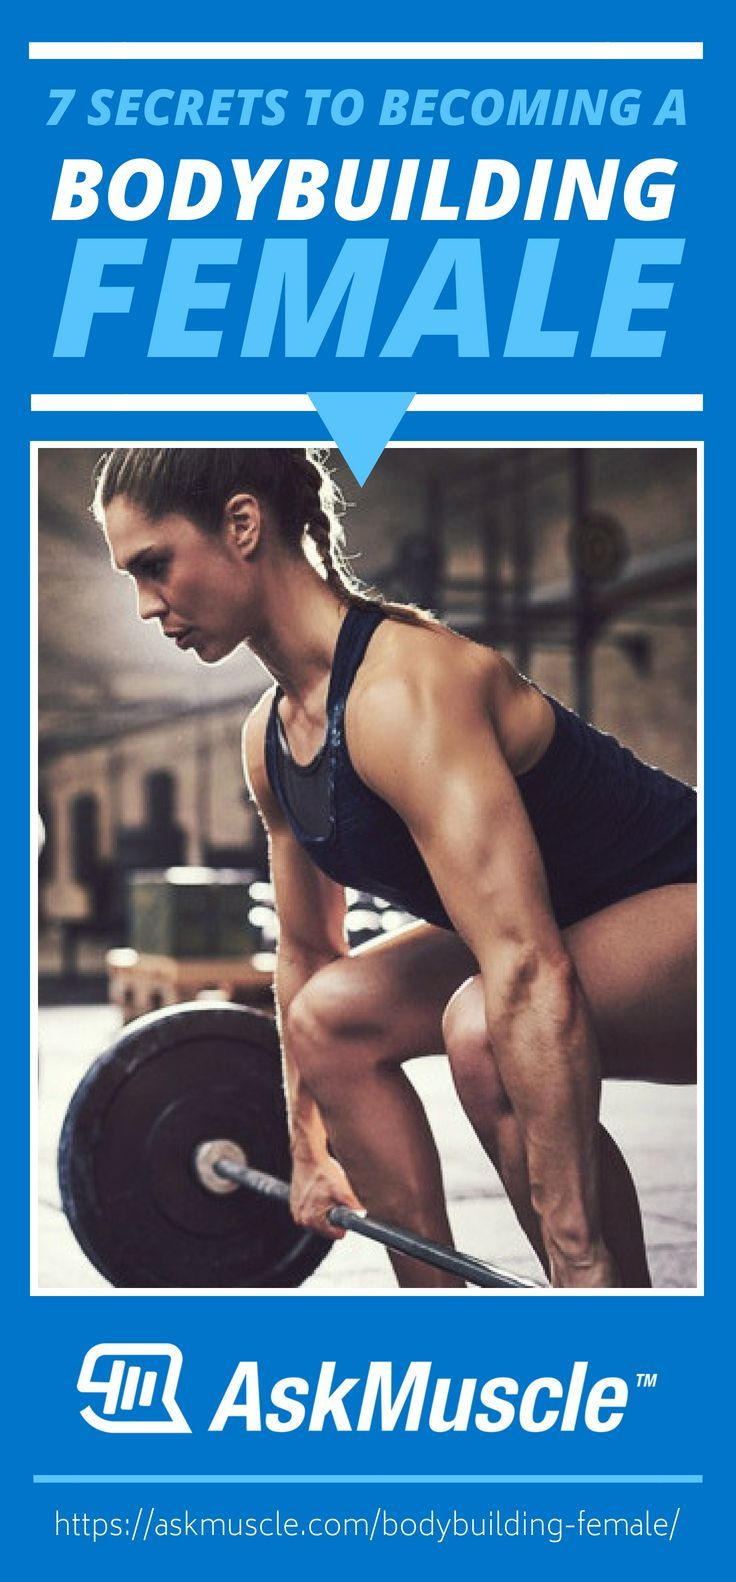 7 Secrets To Becoming A Bodybuilding Female 2